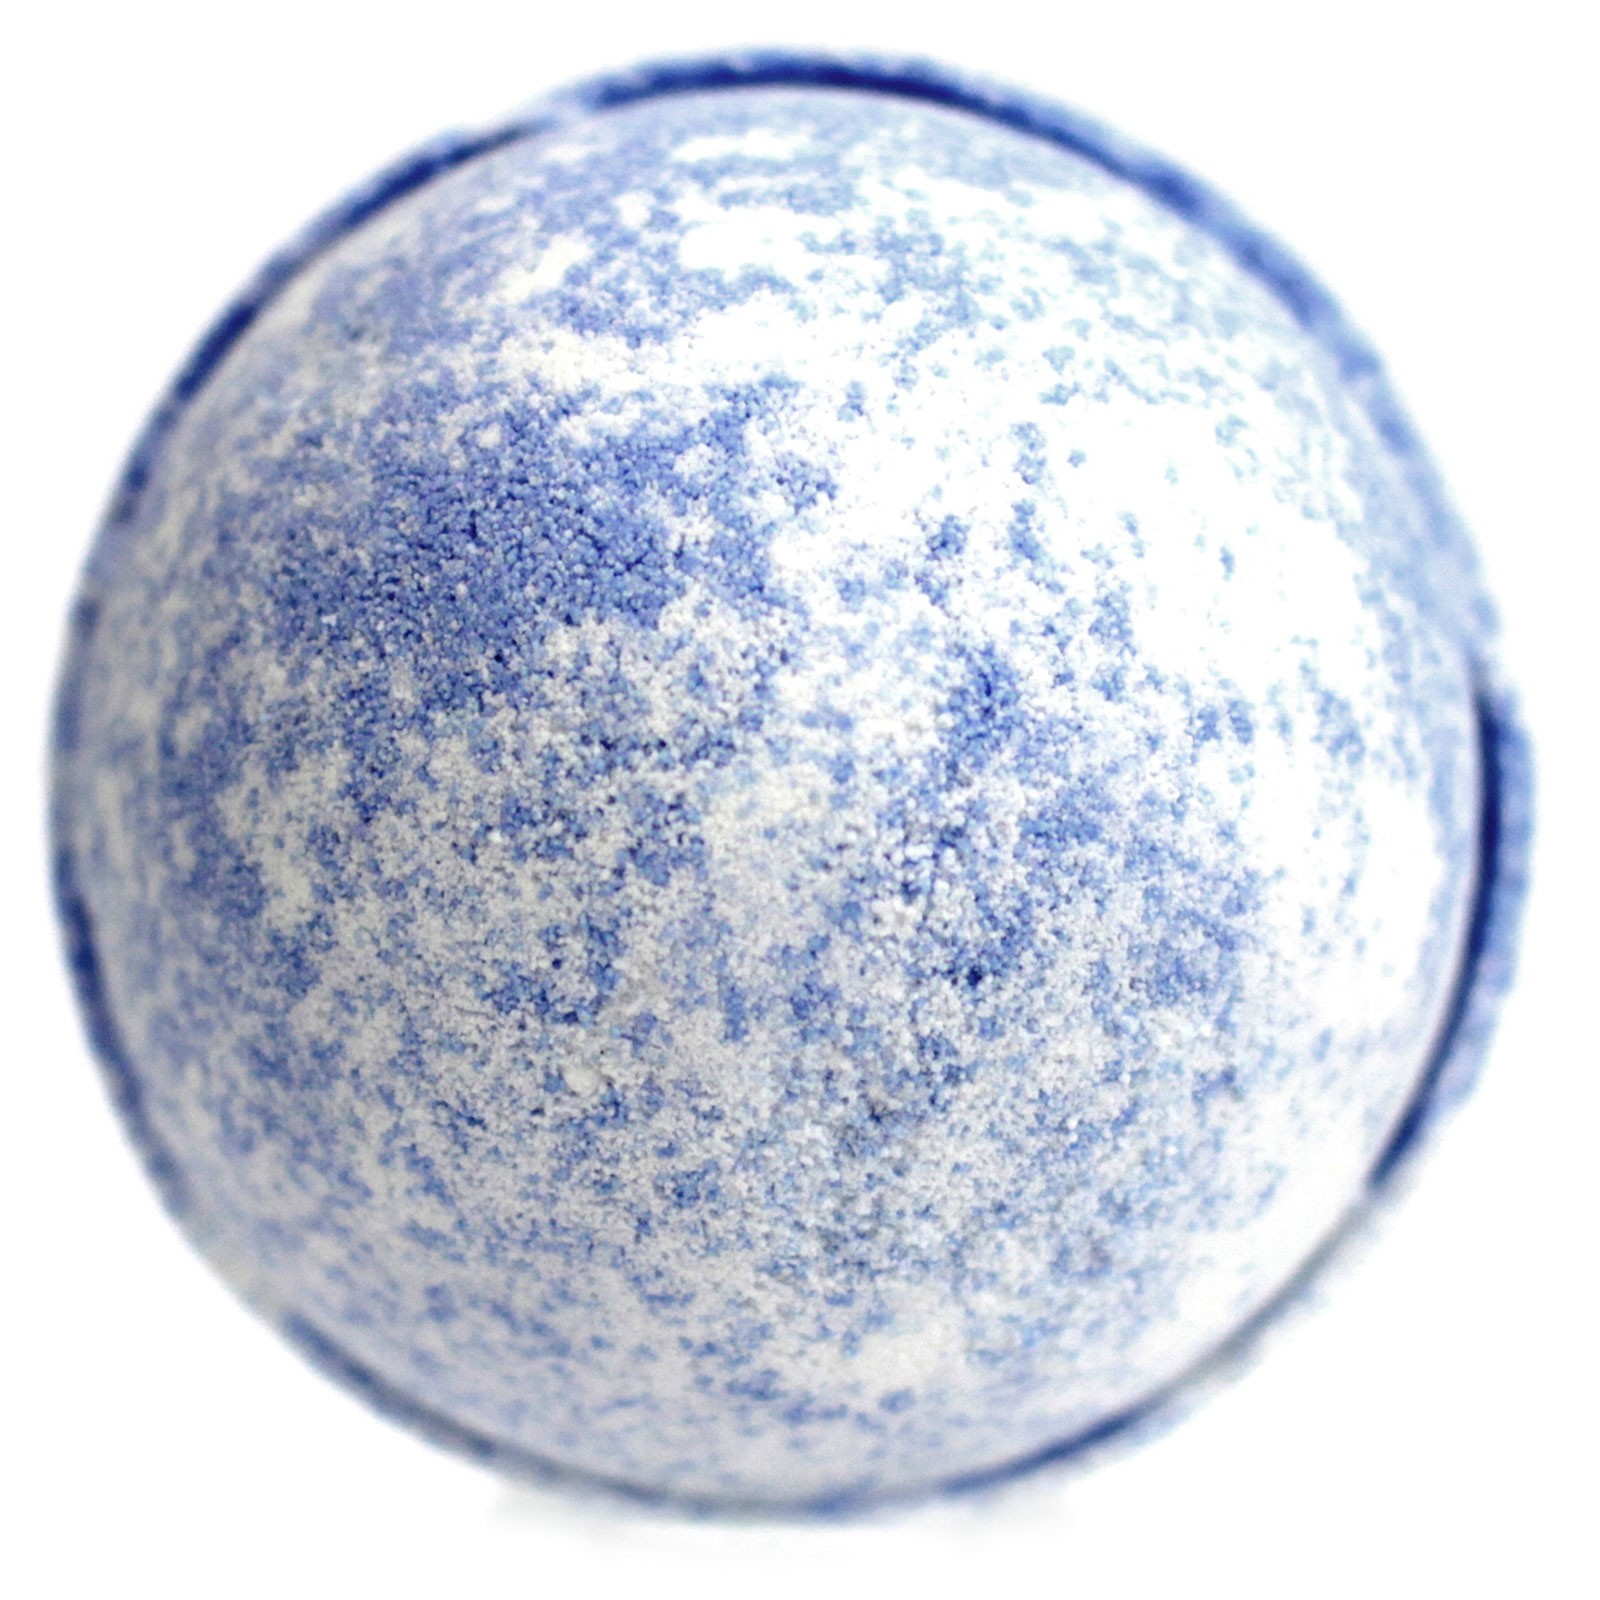 Shea Butter Bath Bomb Fig   Cassis